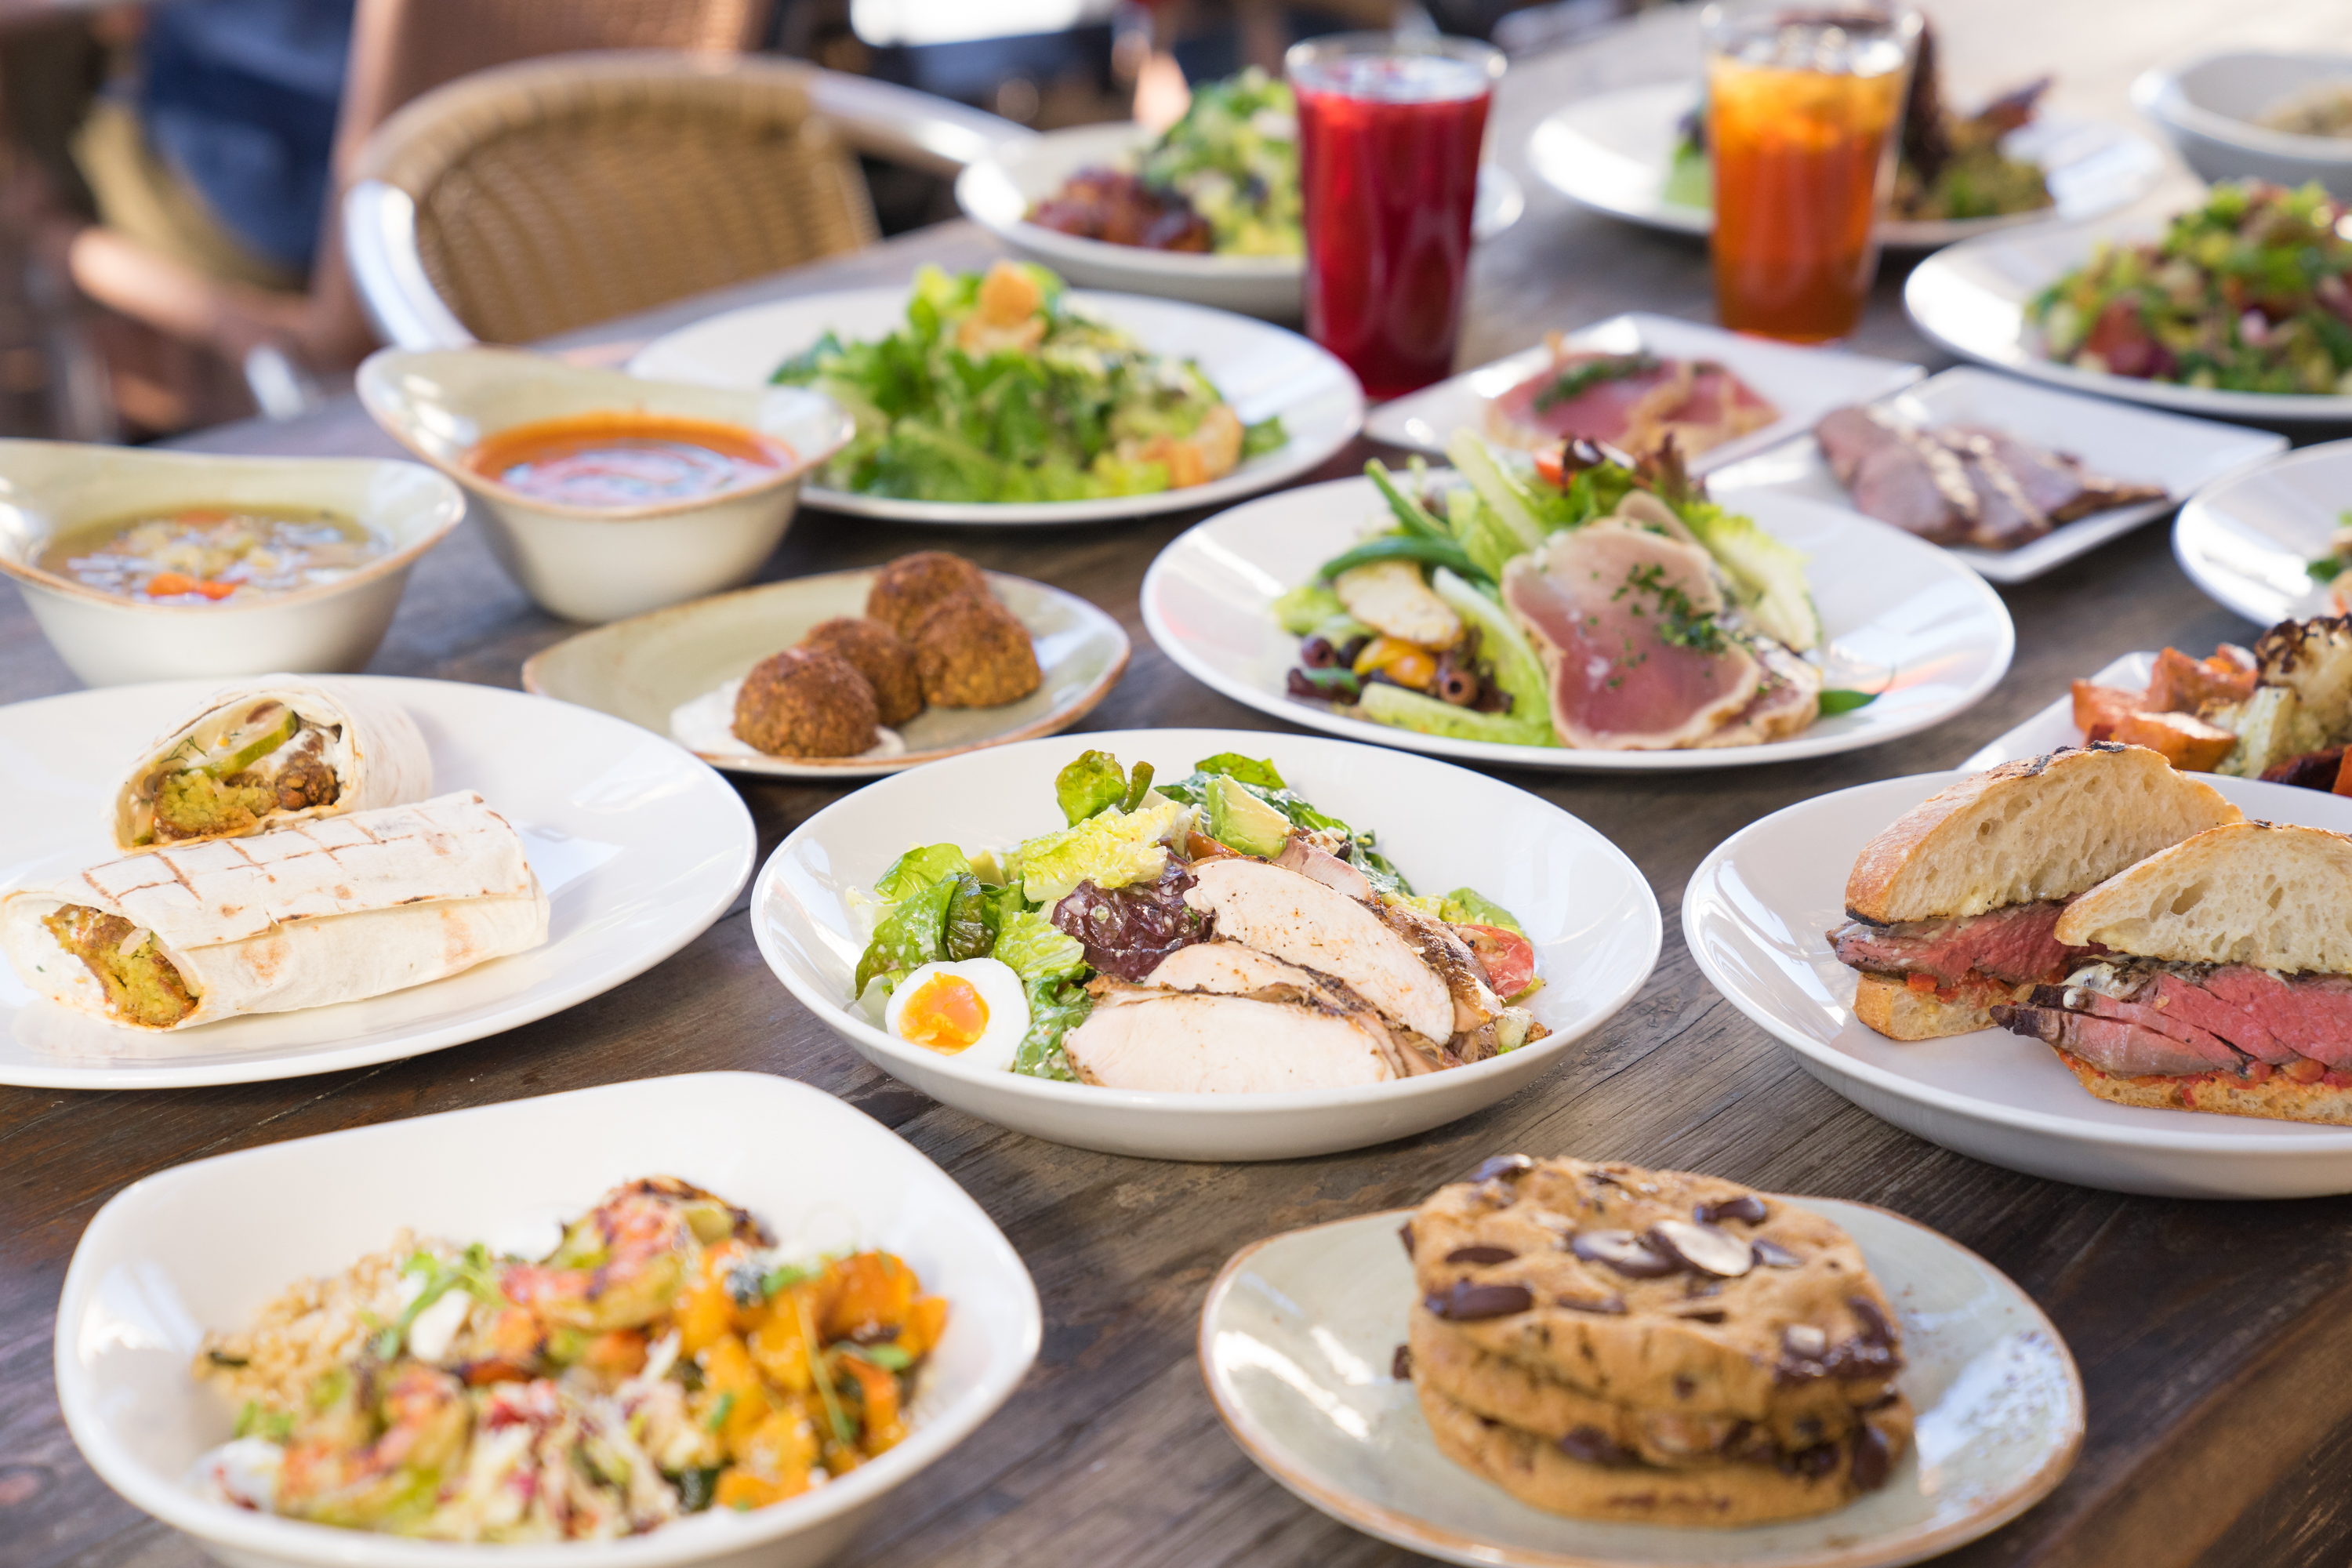 There are so many options for the best healthy food in San Francisco